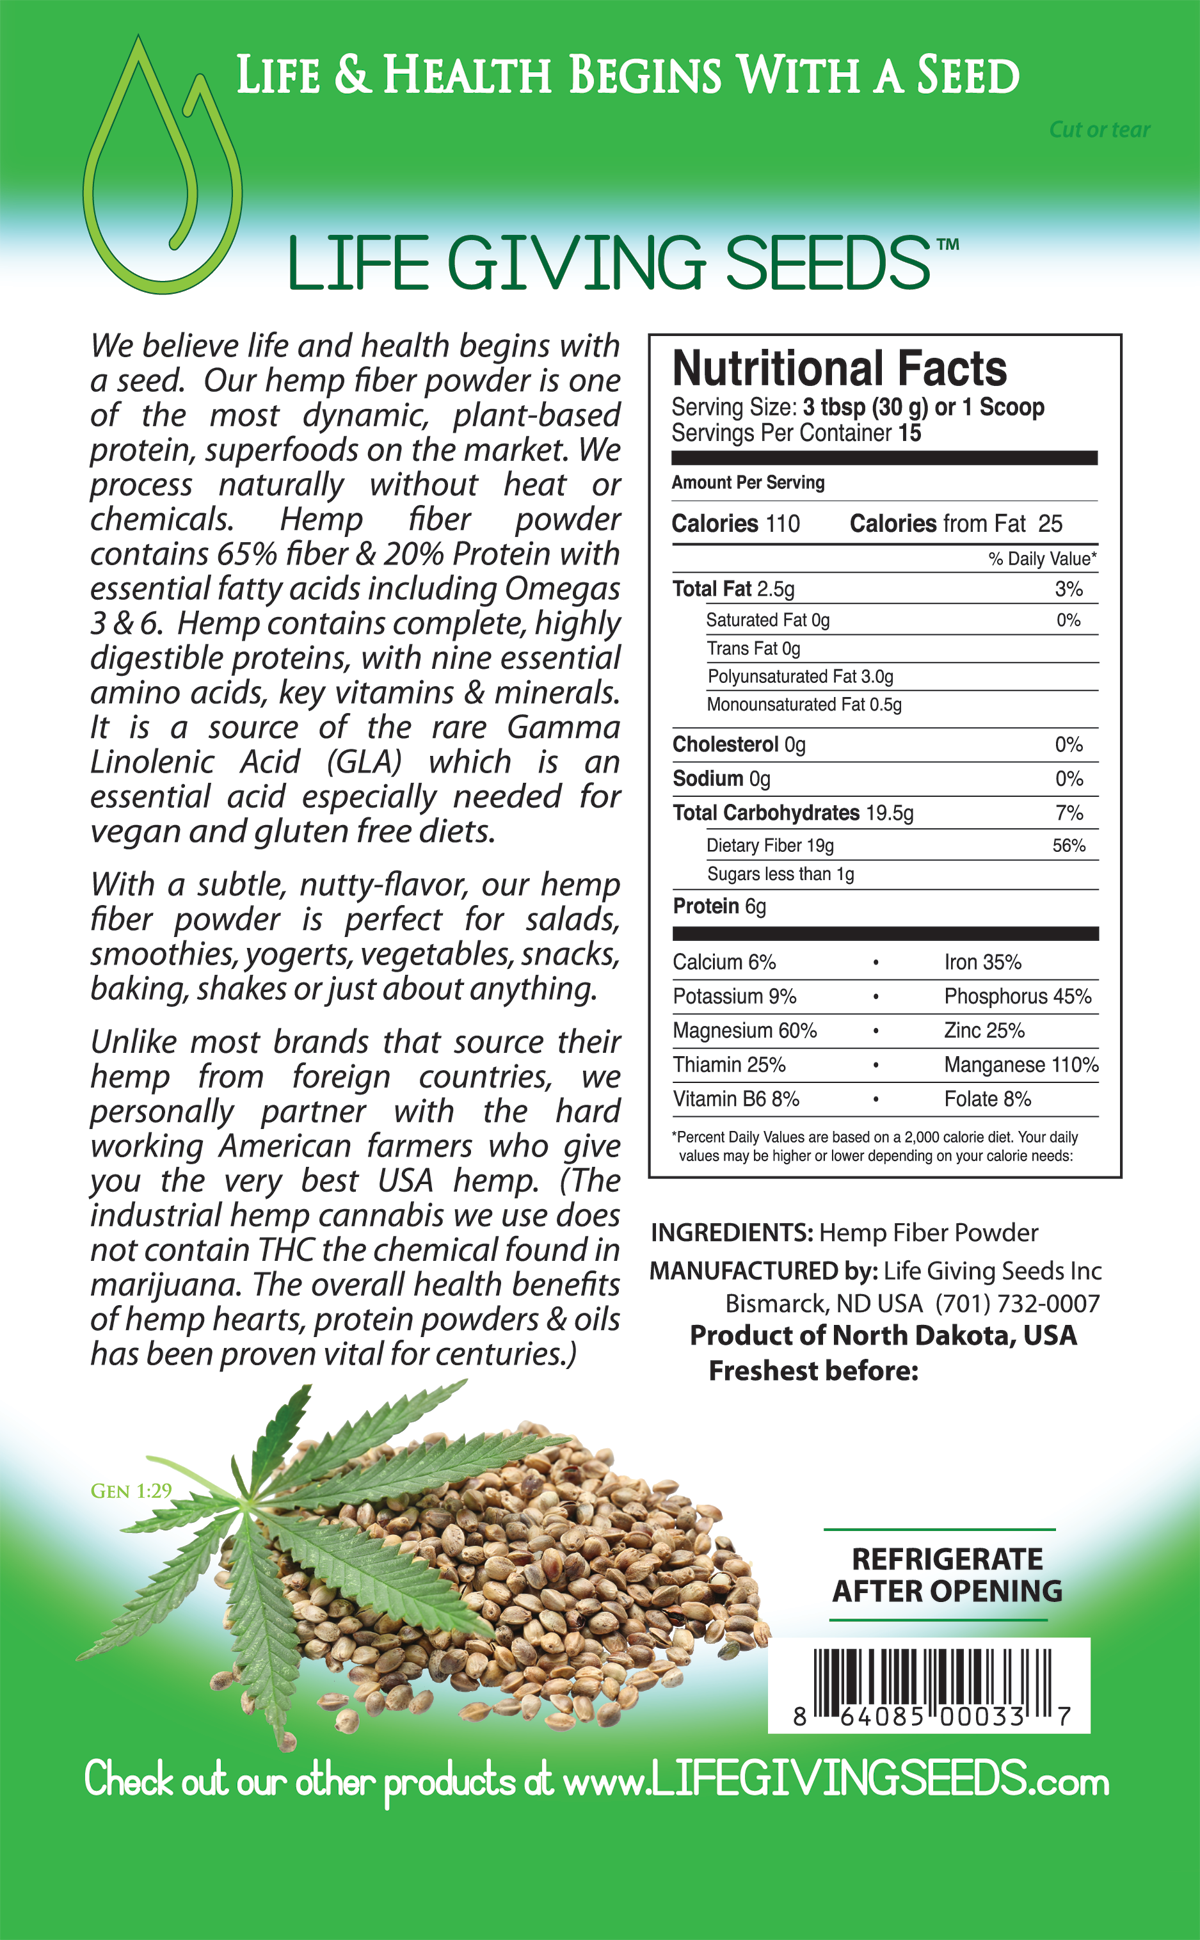 Hemp Fiber and Protein Powder